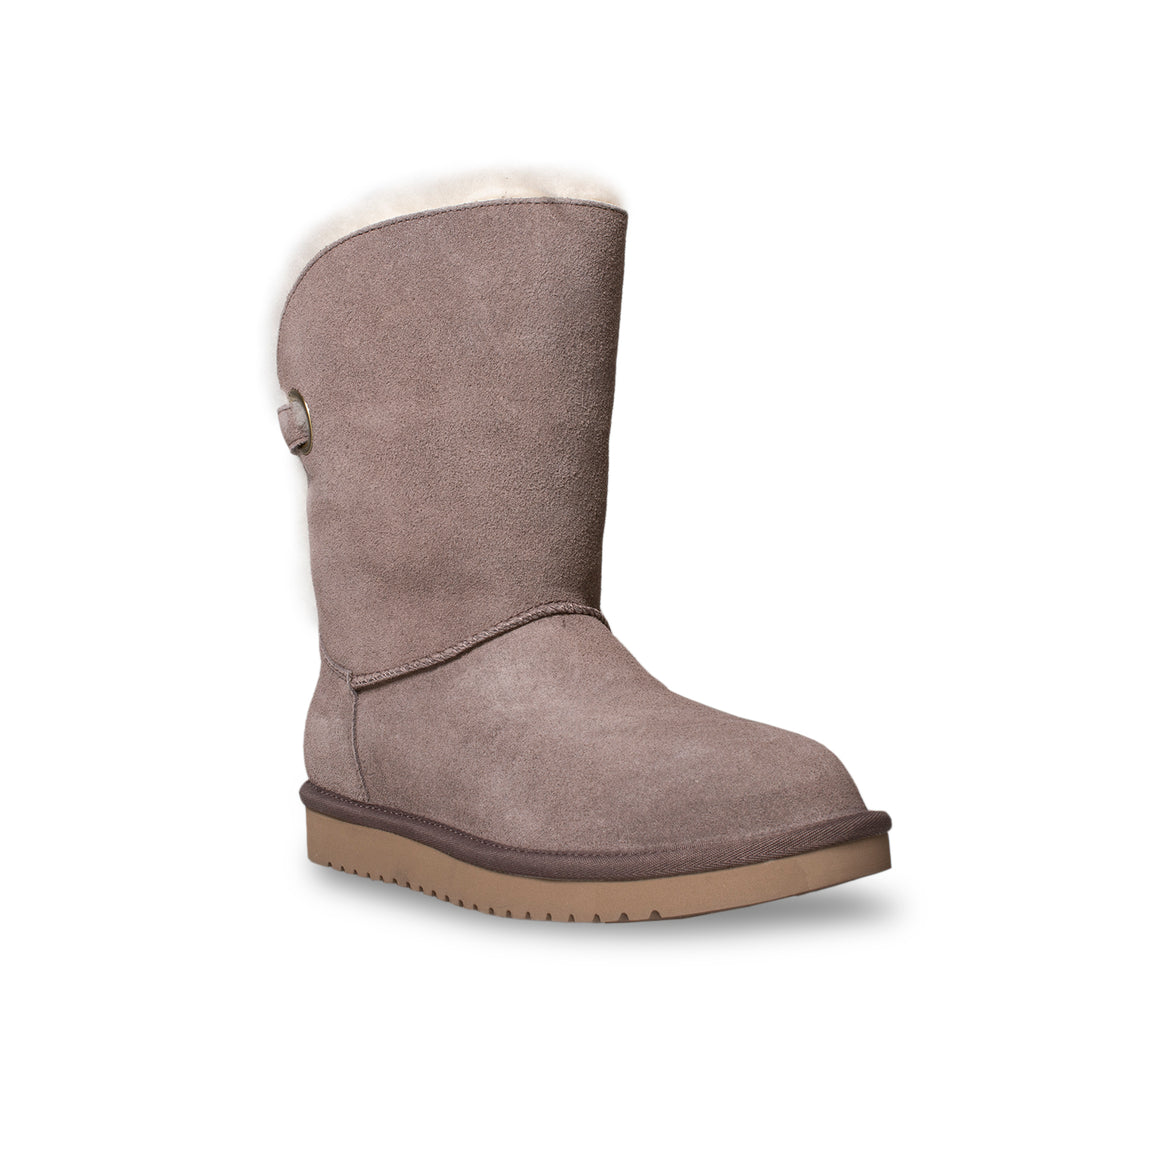 Koolaburra By UGG Remley Short Cinder Boots - Women's